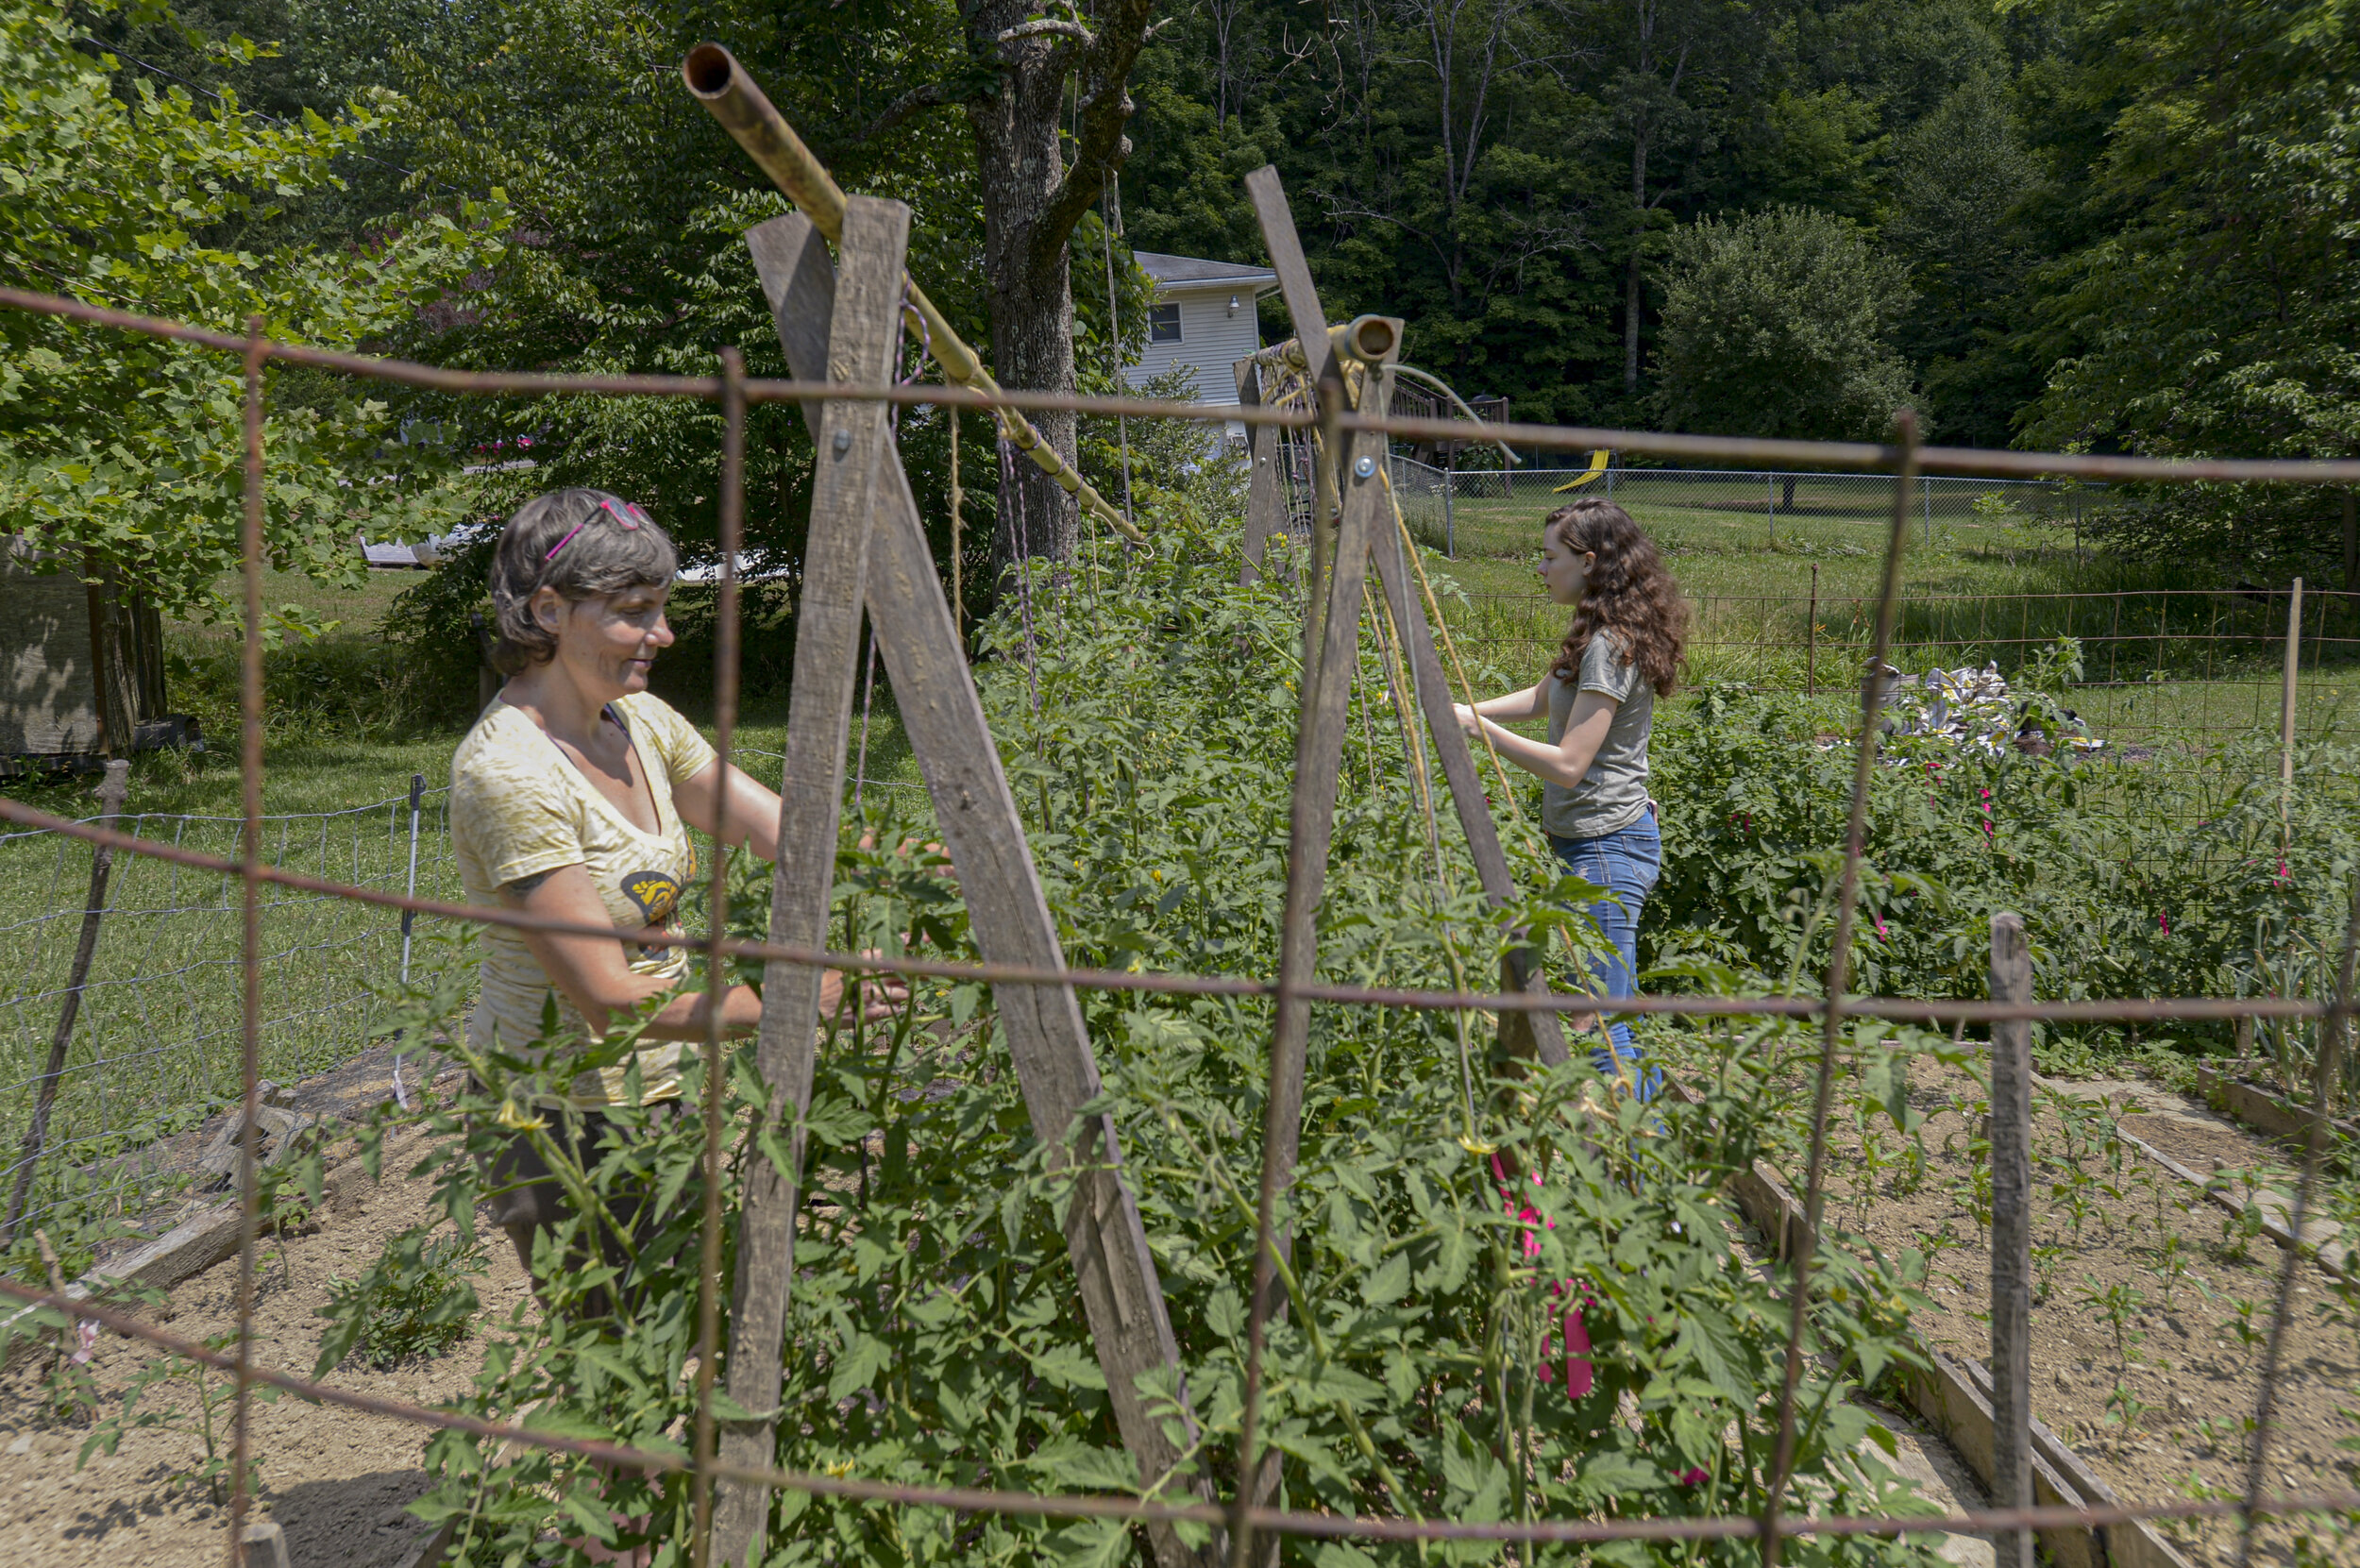 Jennifer Boyle-Hempel and her daughter, Laura Hempel, 17, tend to their family garden on July 13, 2020, in Randolph County. The farm is about 30 minutes away from the nearest school summer feeding site. Photo by F. Brian Ferguson